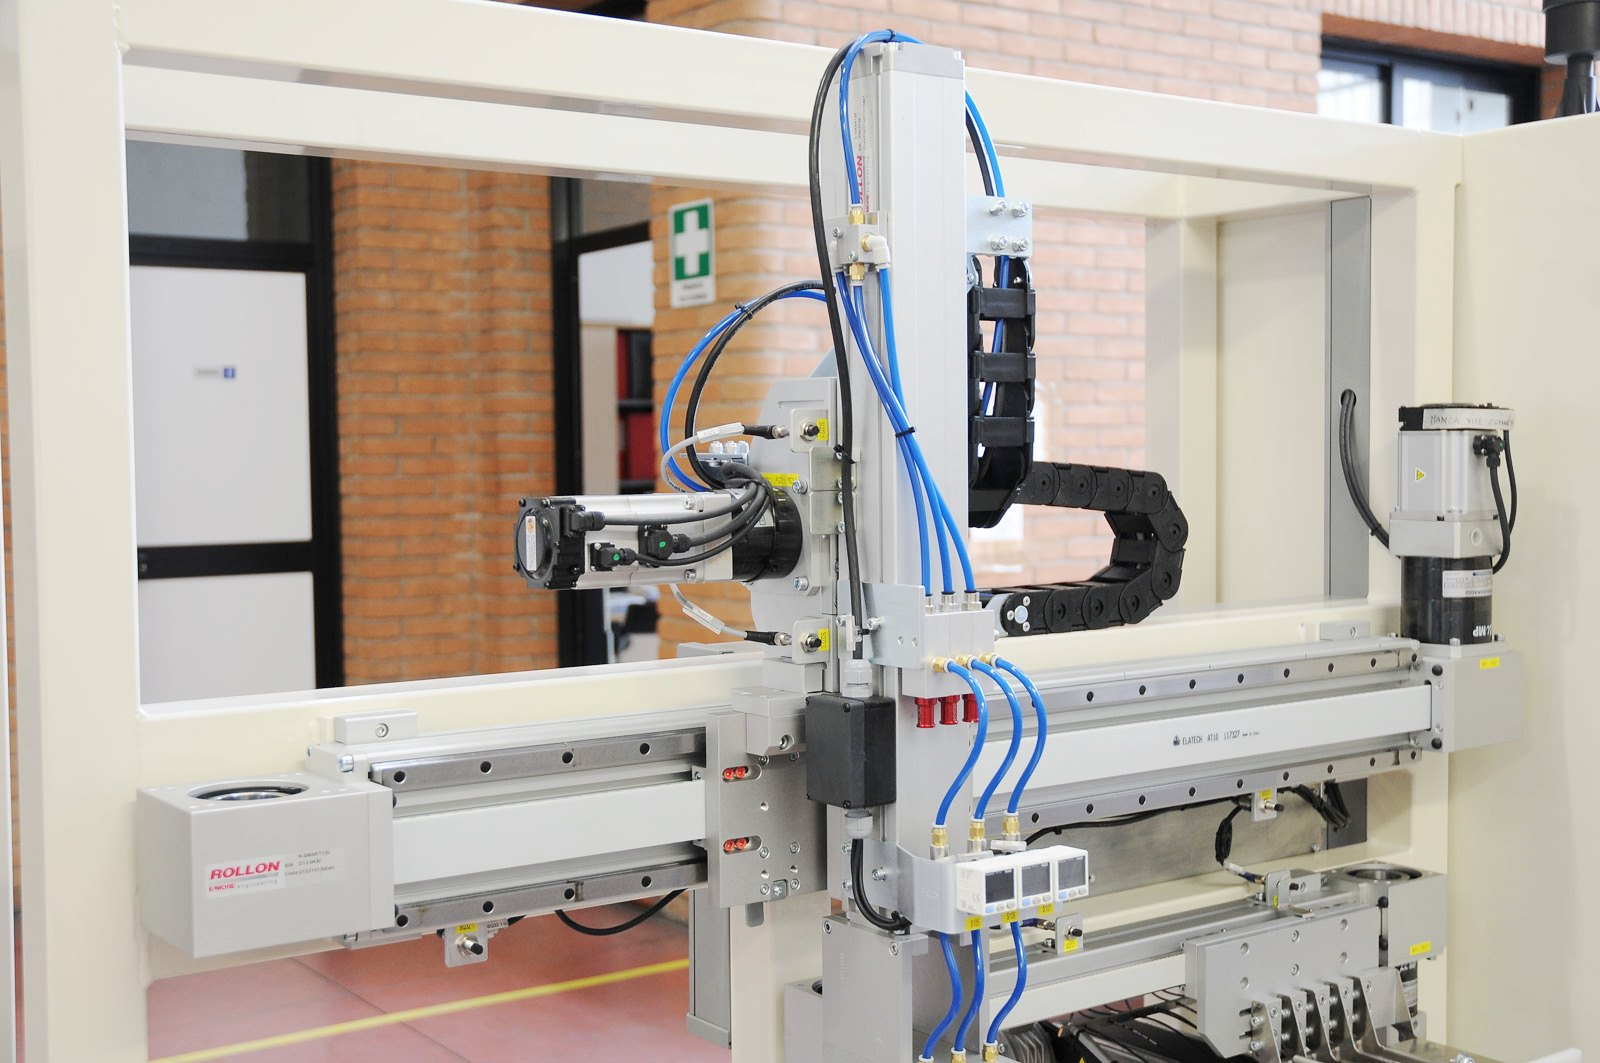 Machine Wiring Systems Gf Automazioni Home Like The Electrical Panels On Board System Can Be Provided Either As A Turnkey Service Or Subcontract Work